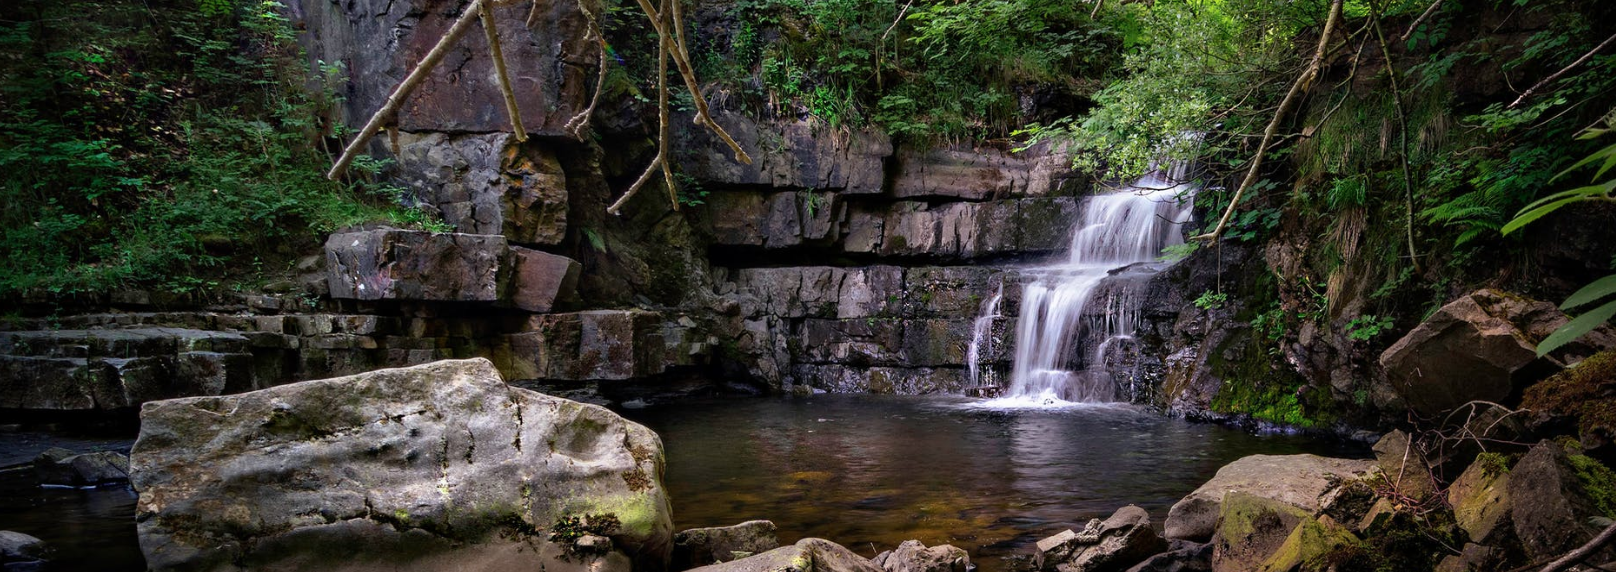 swimming holes as a summer outdoor activity